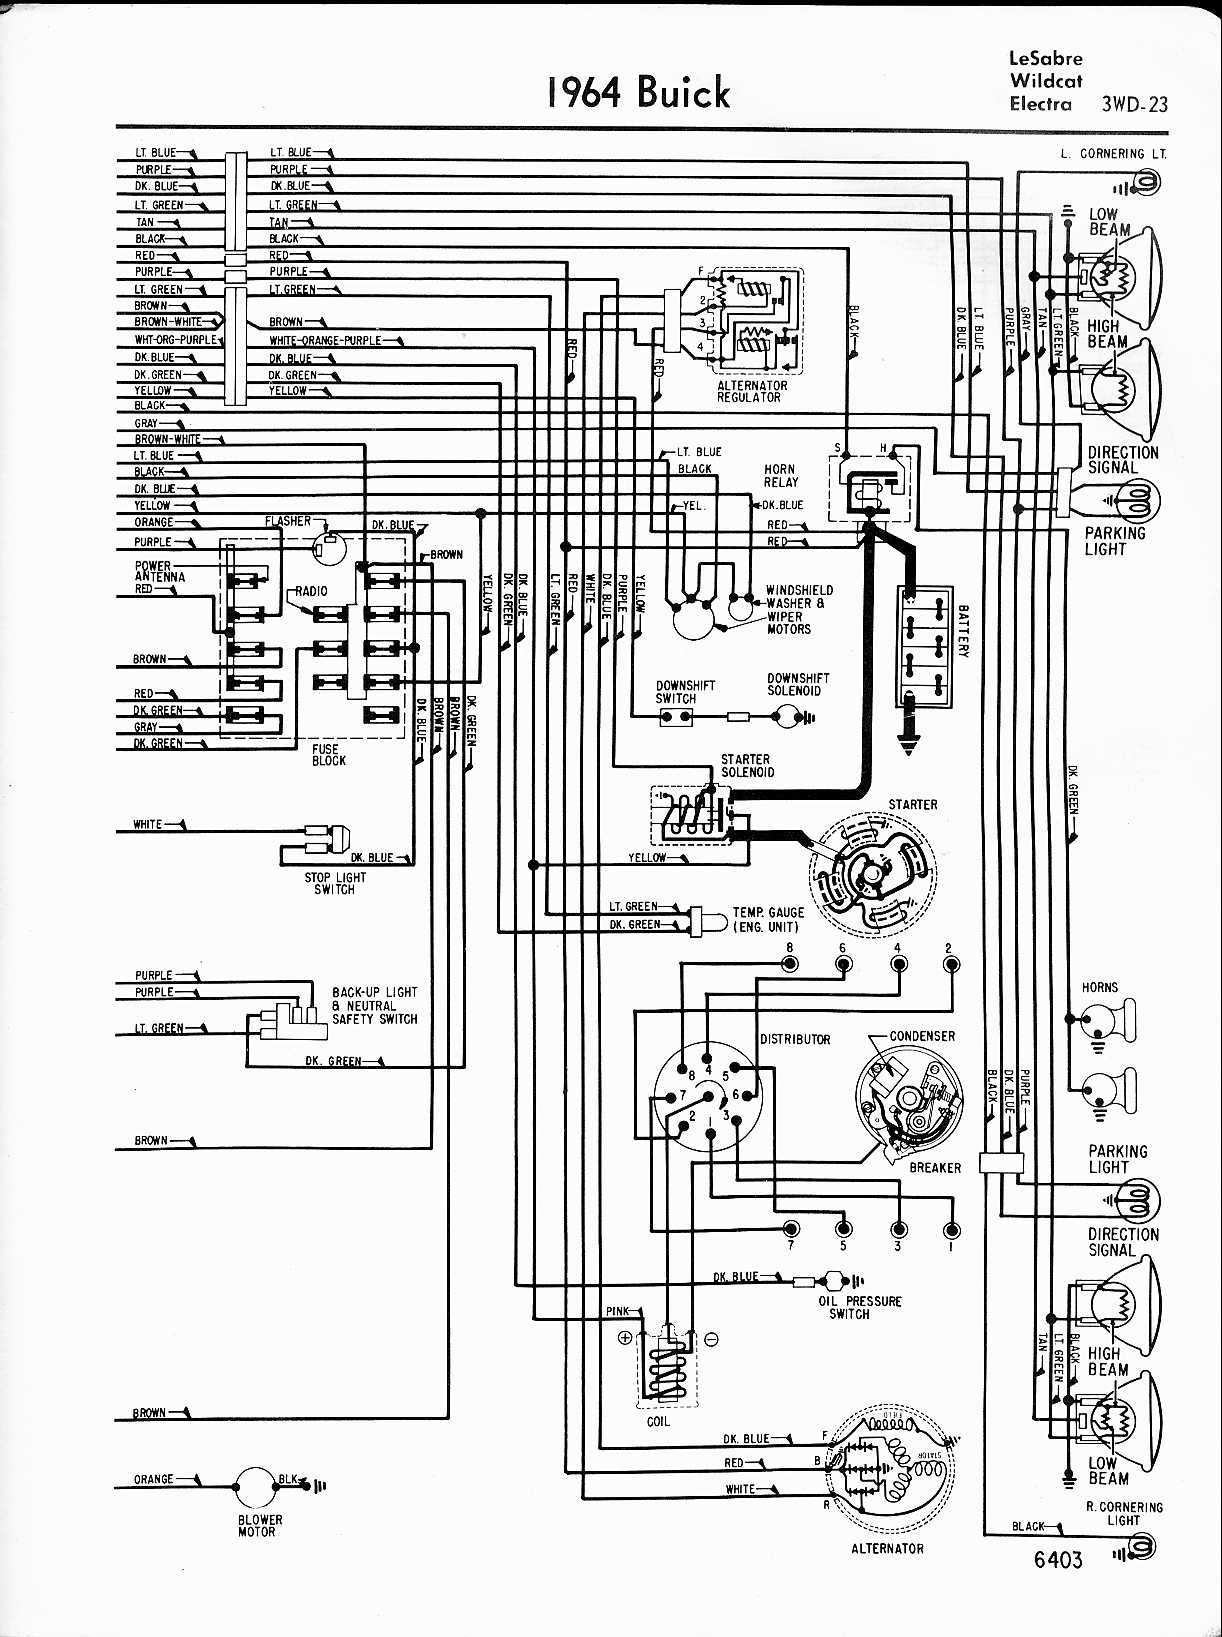 2003 Buick Regal Seat Wiring Diagram - Complete Wiring Diagrams •